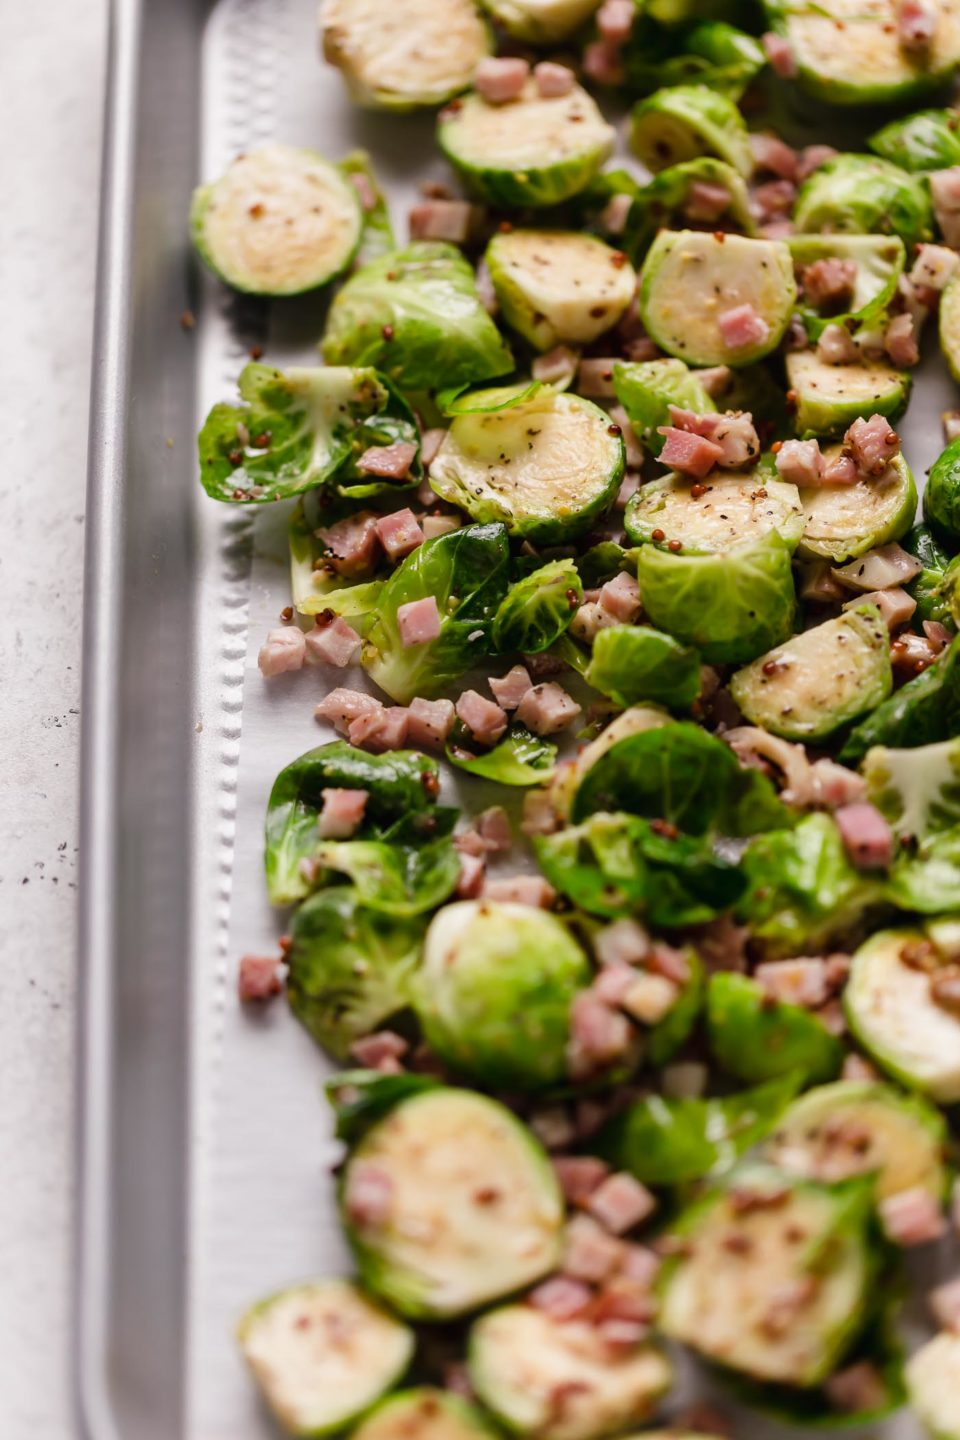 The brussels sprouts with pancetta arranged on a parchment-lined baking sheet for roasting.